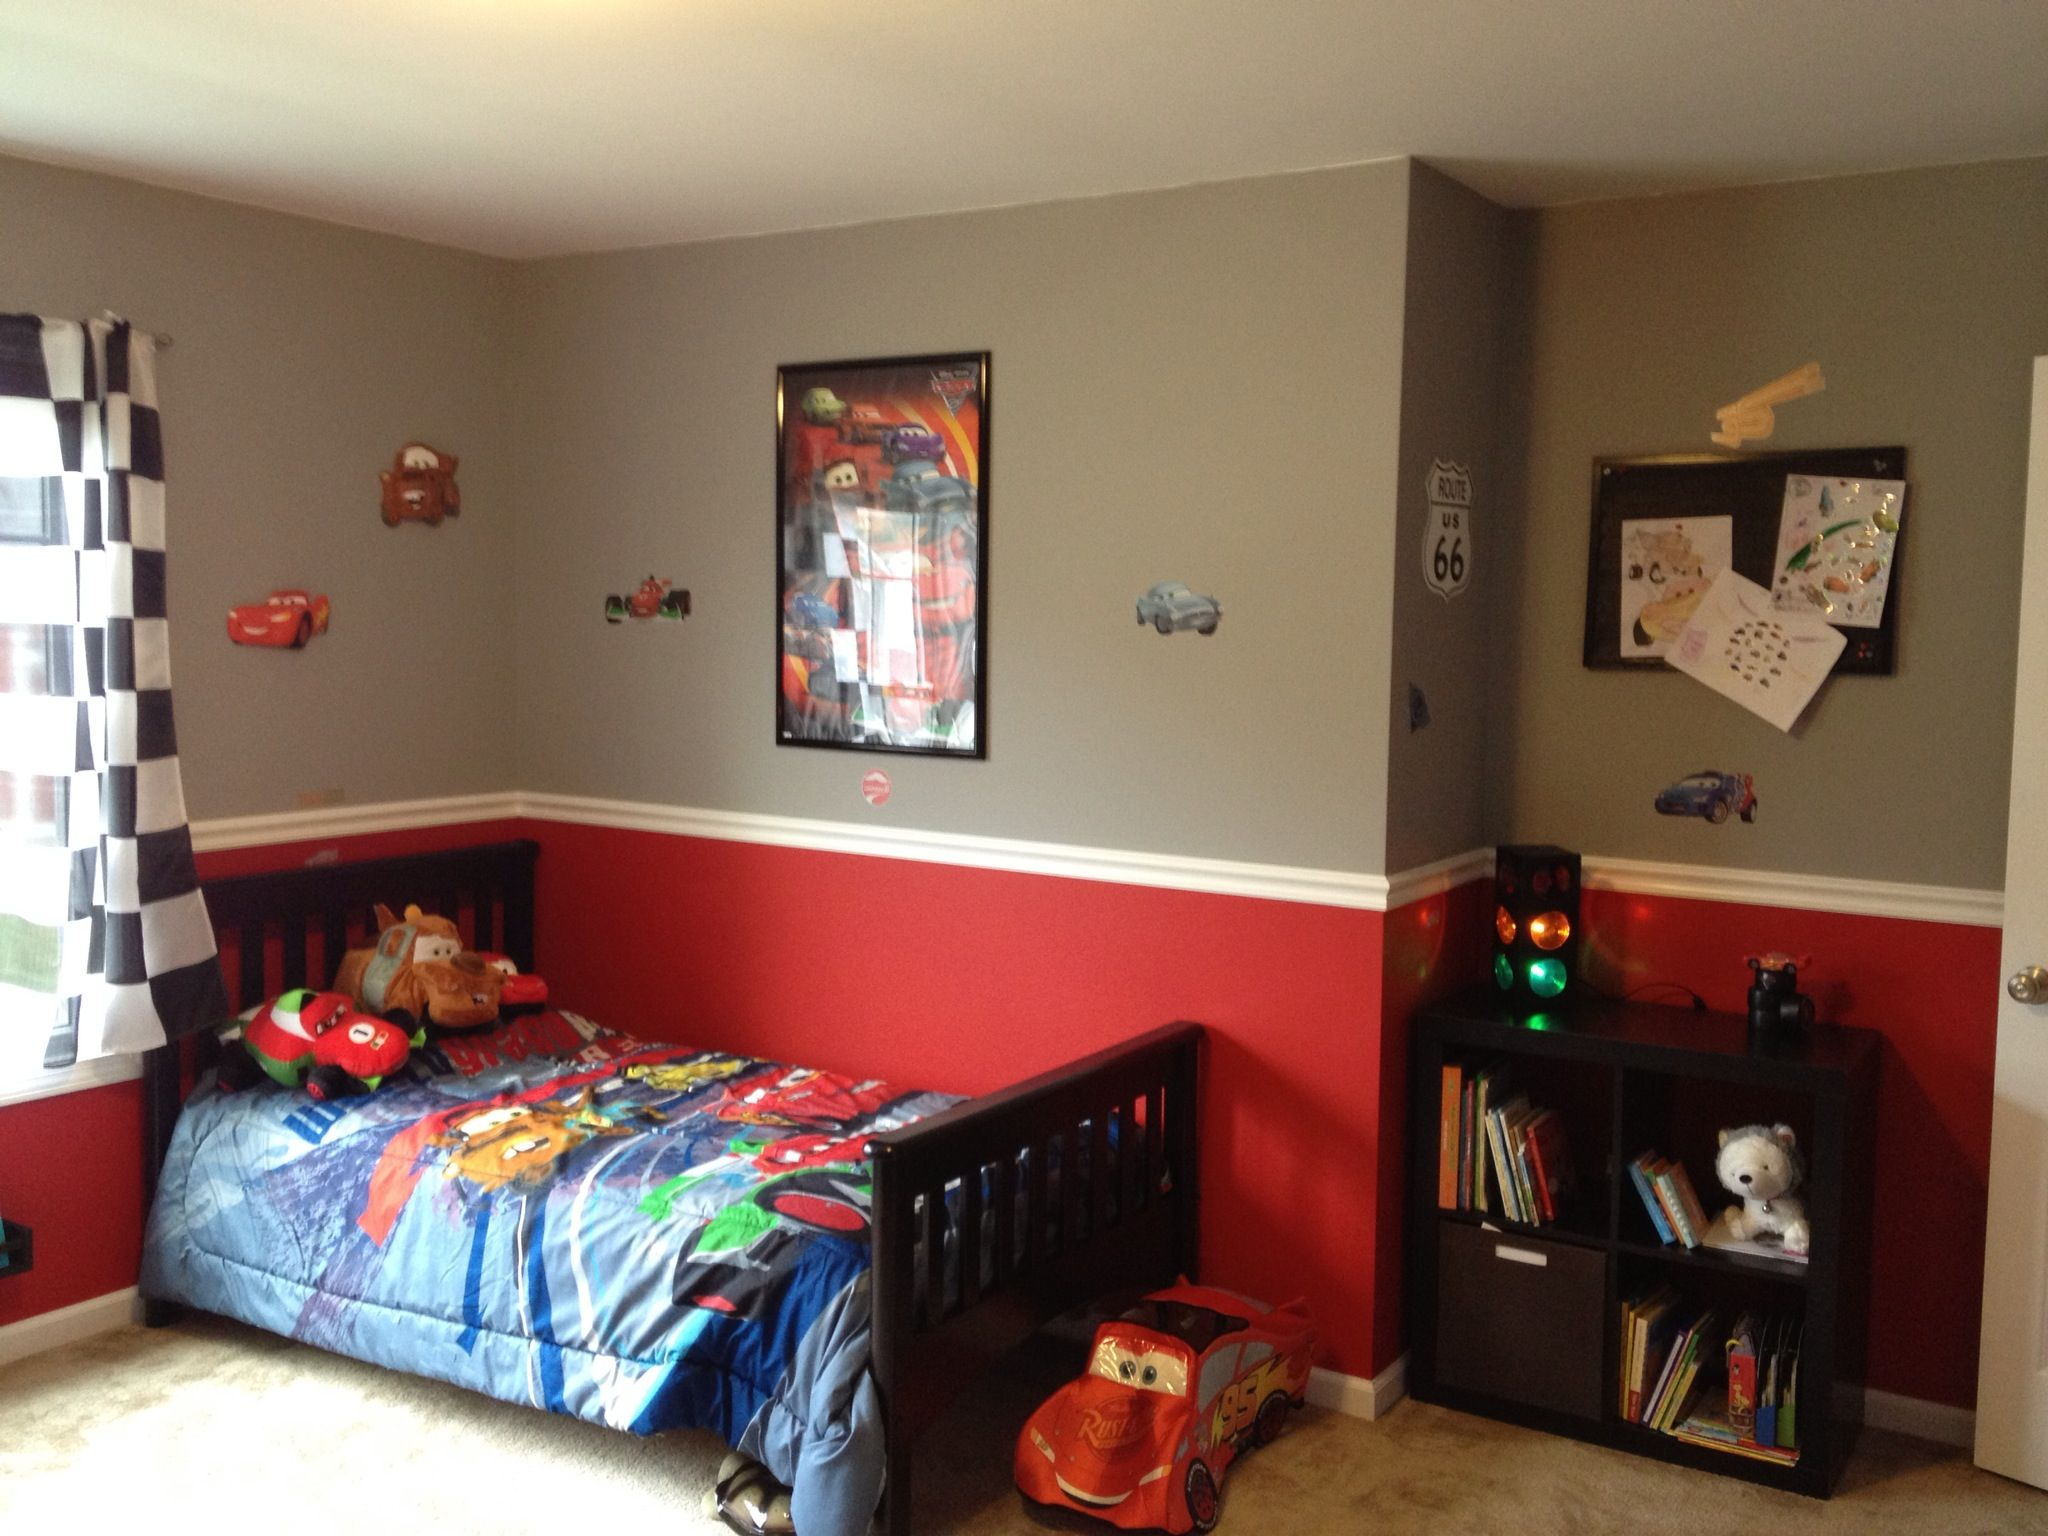 Paint ideas for car themed room | Papa Room | Pinterest | Ikea cube shelves,